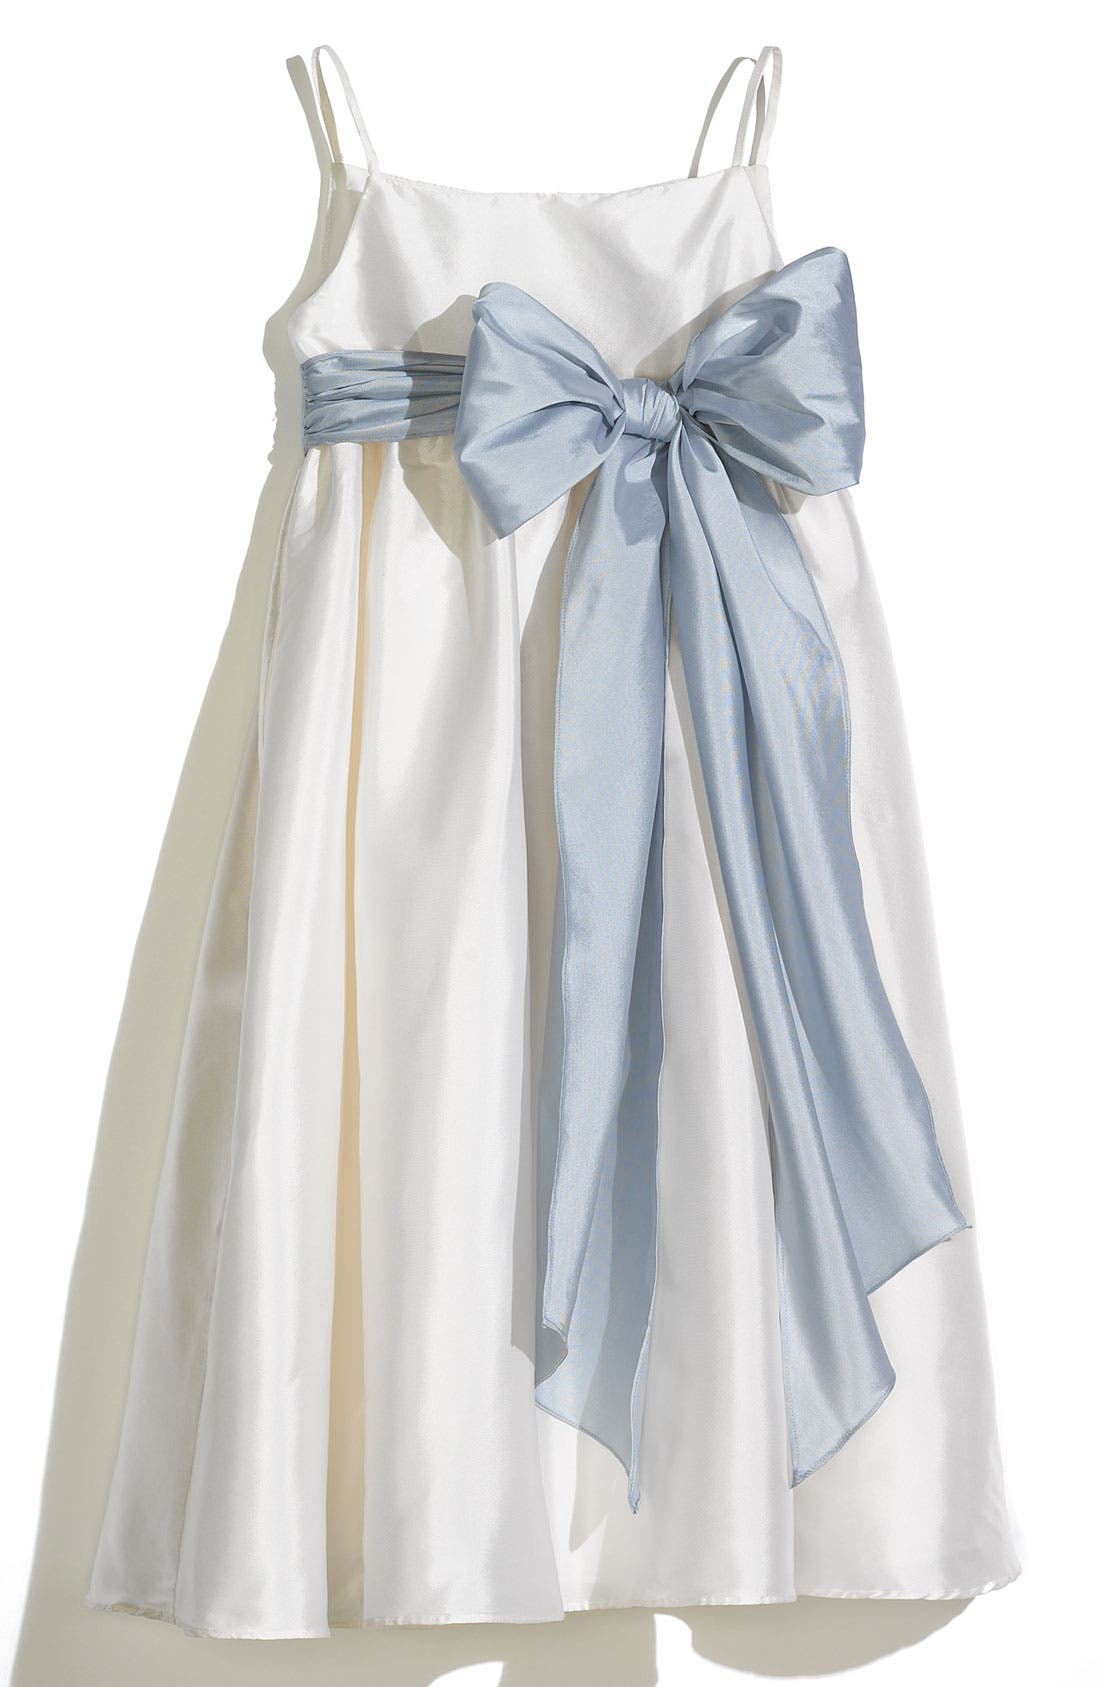 Us Angels A-Line Dress with Sash (Toddler Girls, Little Girls & Big Girls)